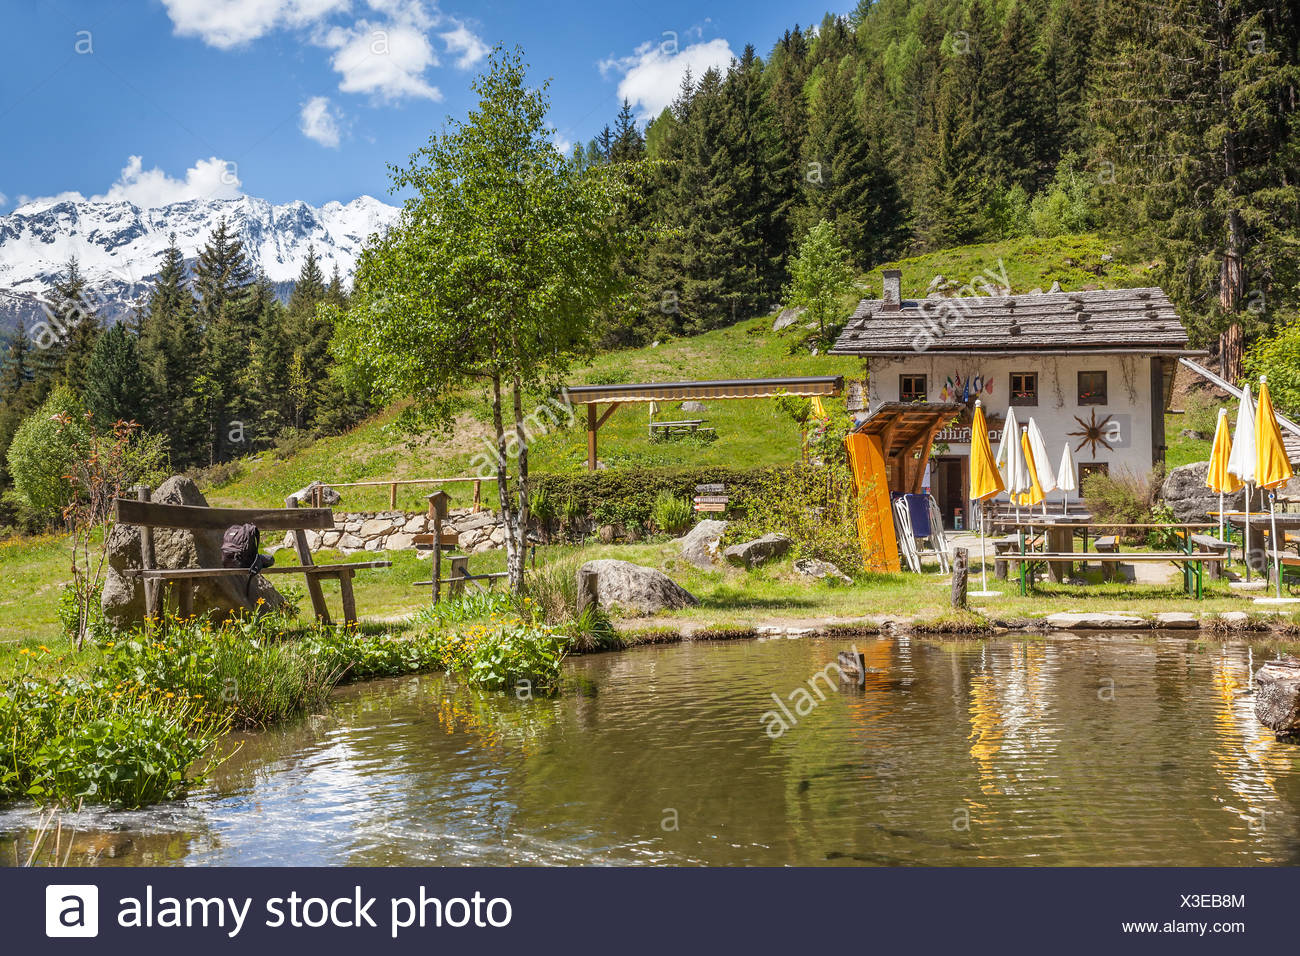 Géographie / voyages, Italie, Tyrol du Sud, Editorial-Use-seulement Photo Stock